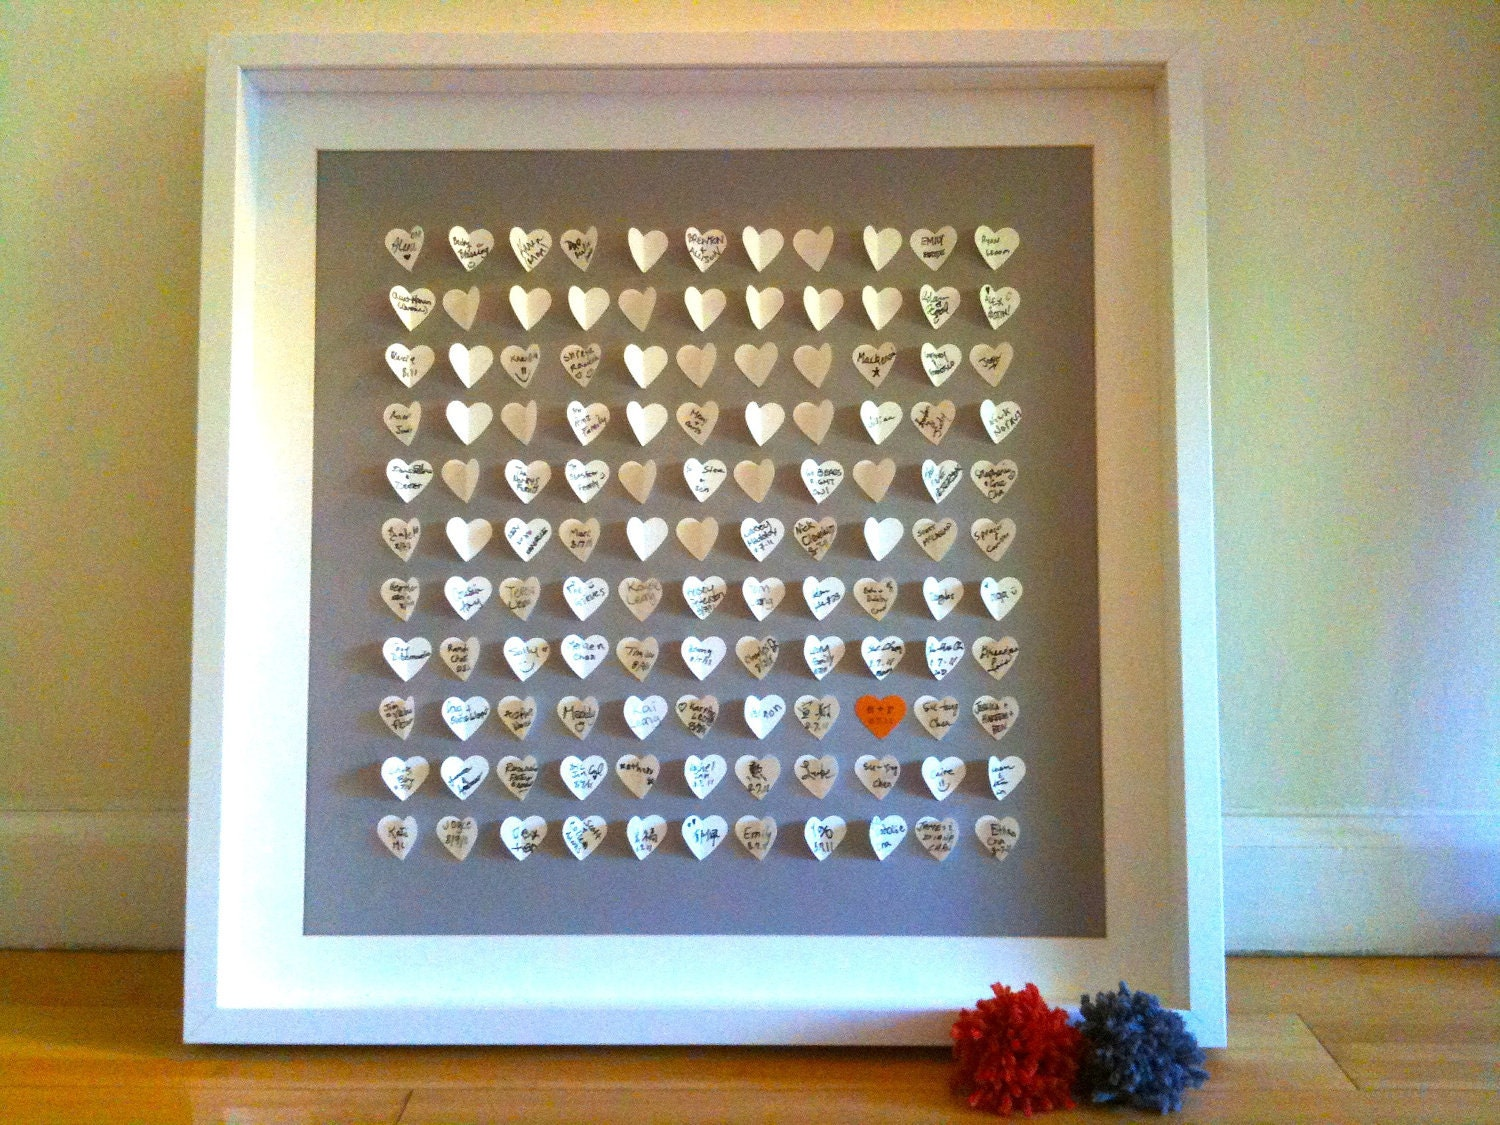 Wedding Guest Book Alternative - Personalized 3D Wedding Hearts - MEDIUM (includes frame, instruction card and two pens)